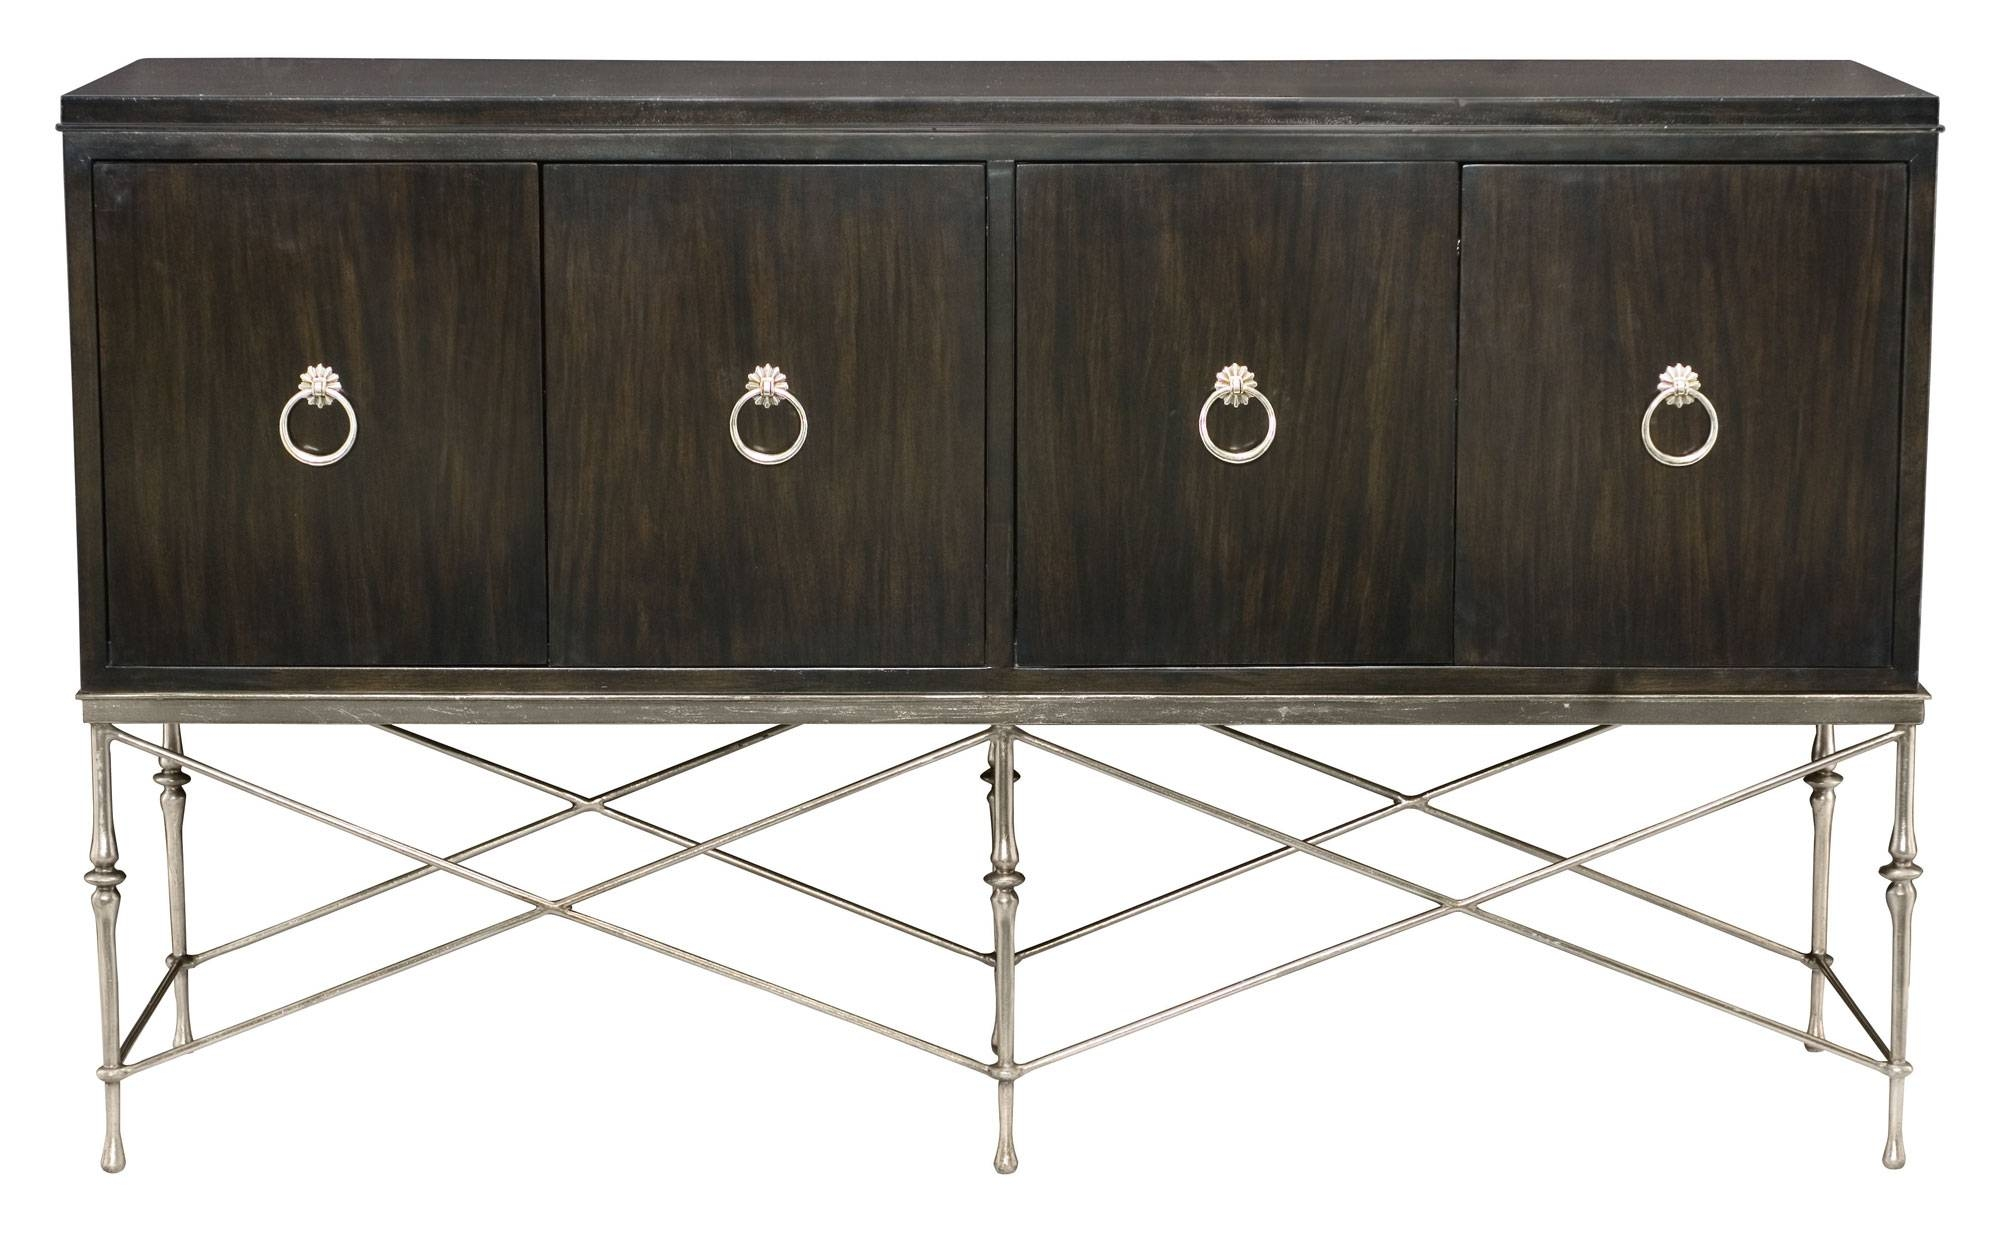 Buffet And Metal Base | Bernhardt With Metal Sideboards Furniture (#4 of 20)